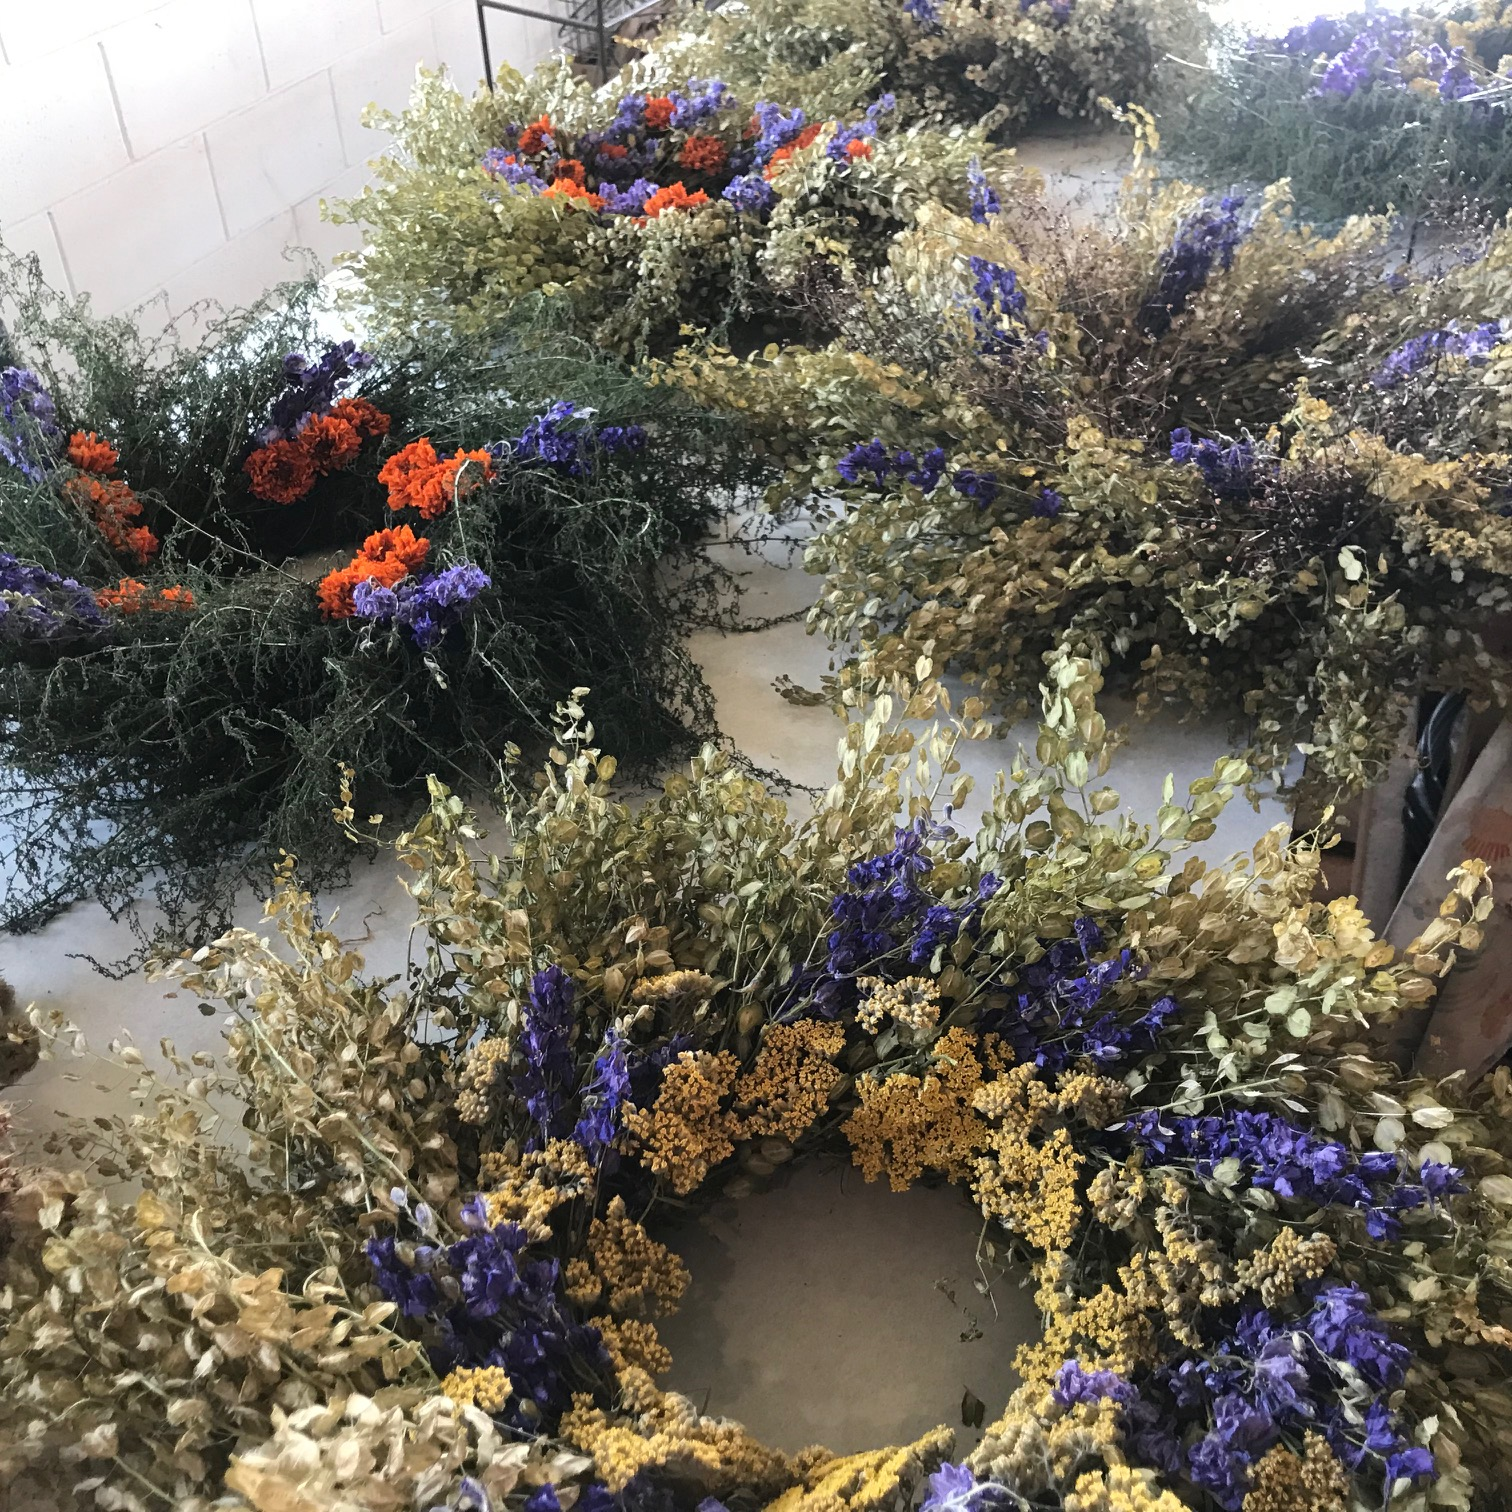 Roots dried flower wreaths